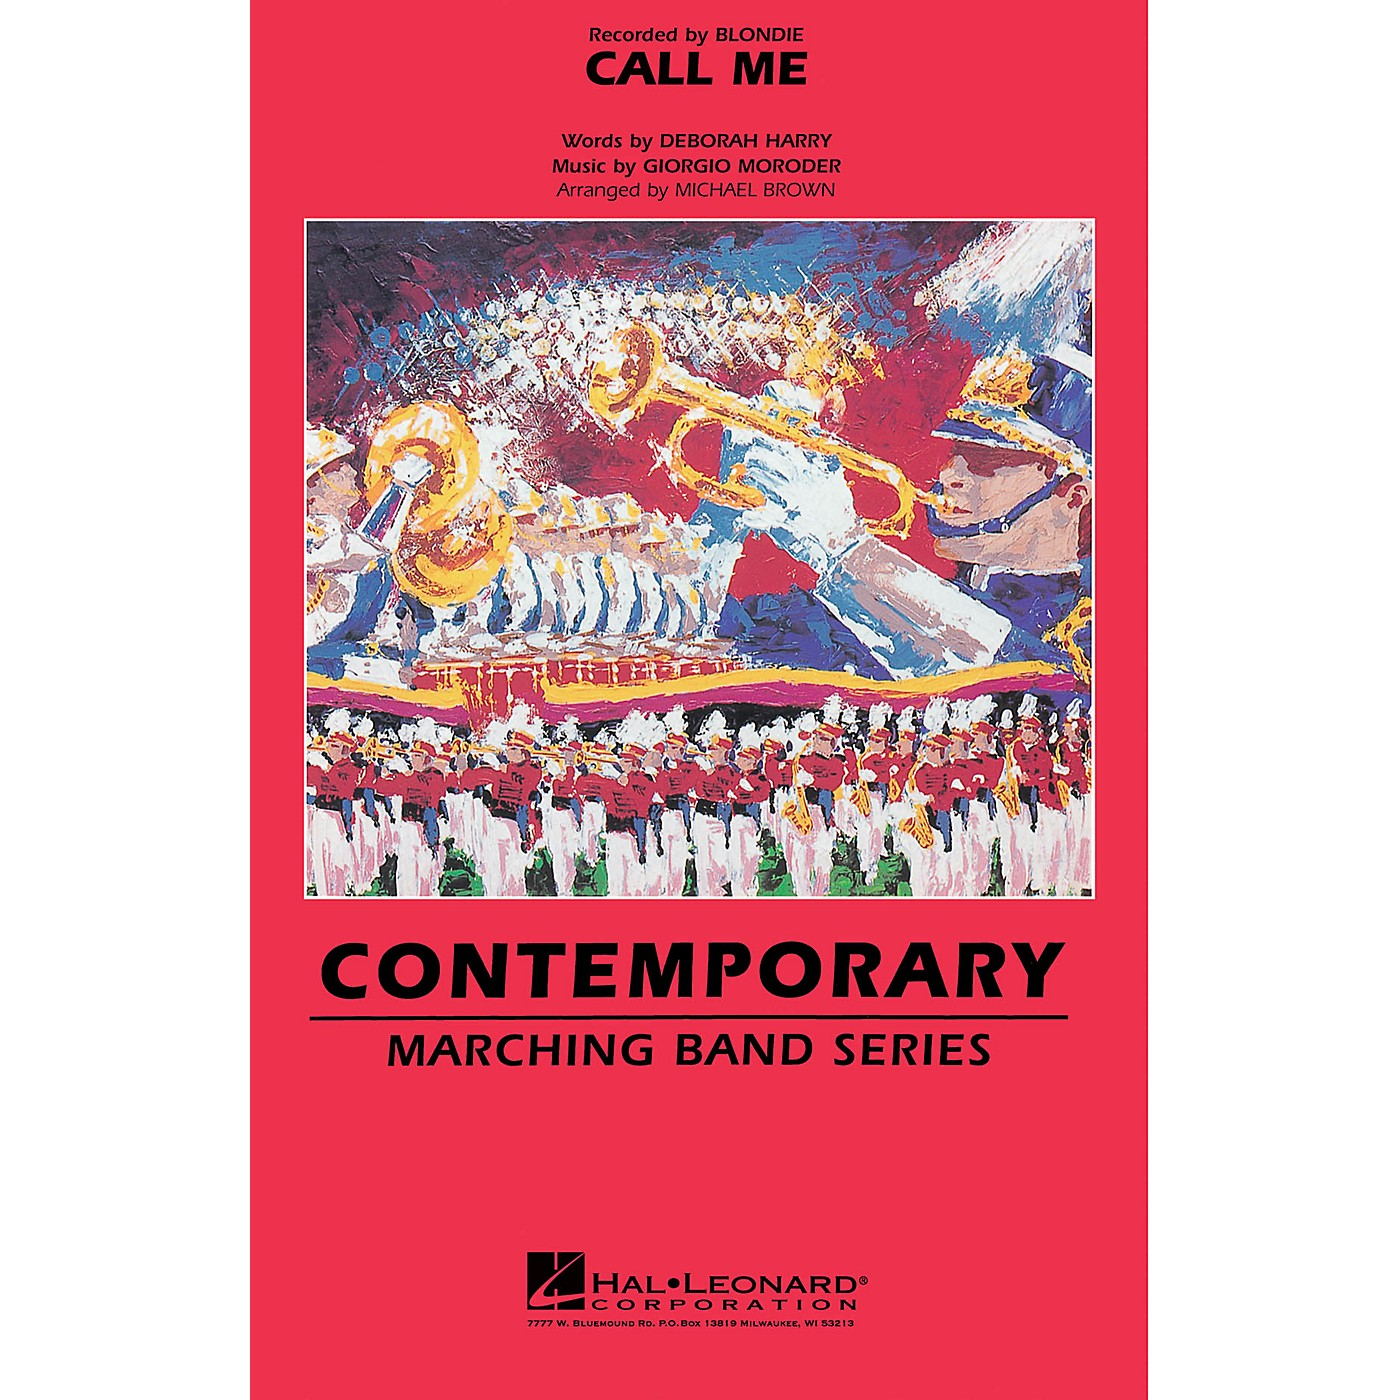 Hal Leonard Call Me Marching Band Level 3 by Blondie Arranged by Michael Brown thumbnail